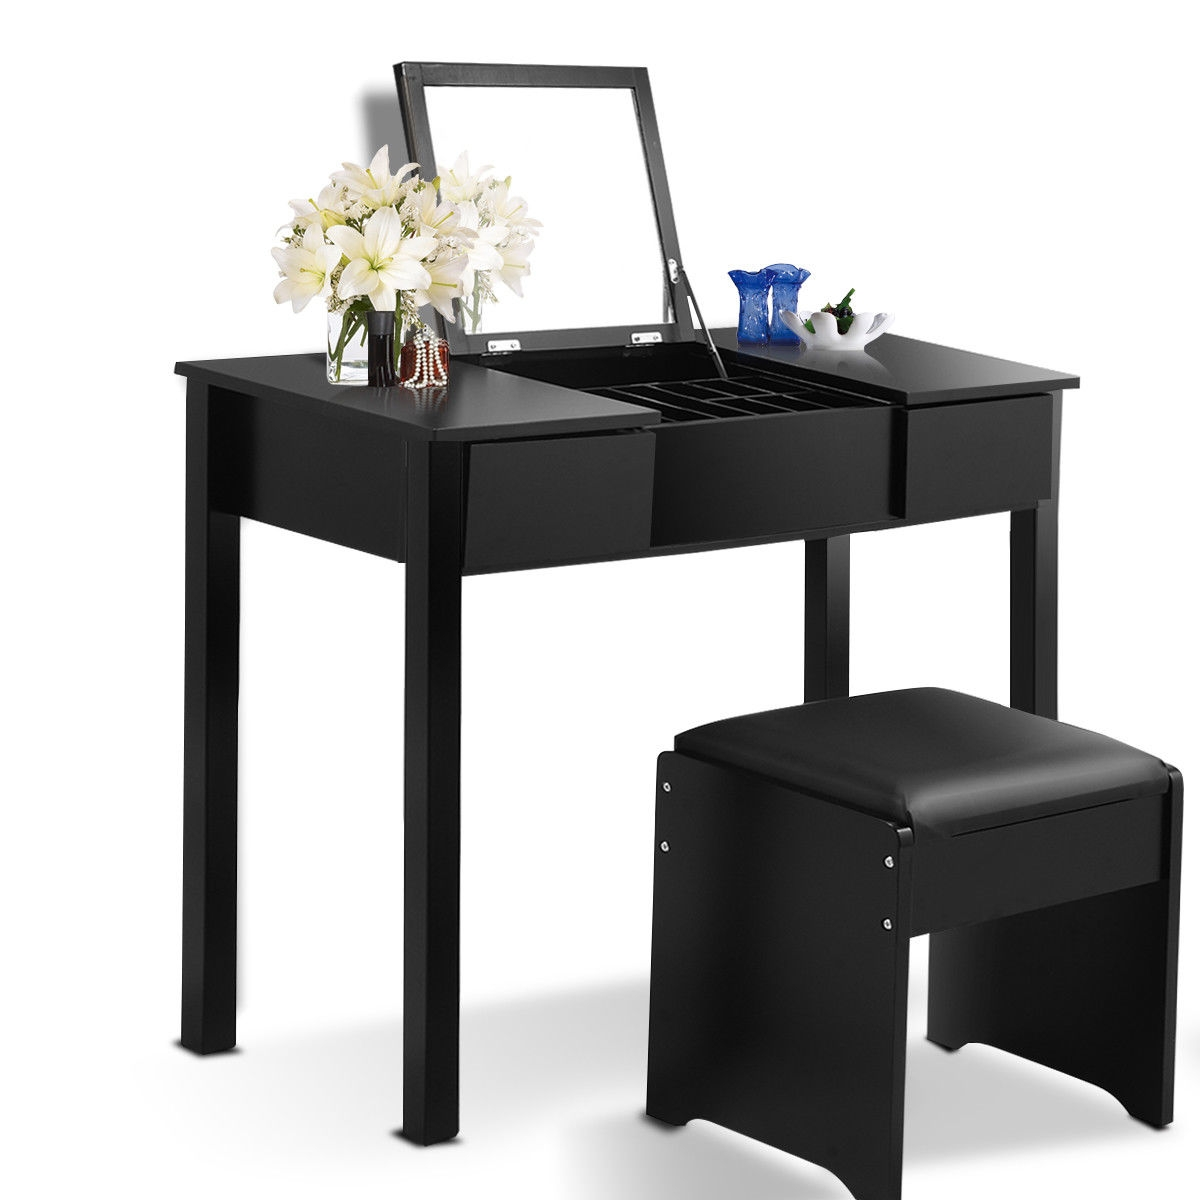 Black / White Vanity Makeup Dressing Table Set with Cell Storage Box